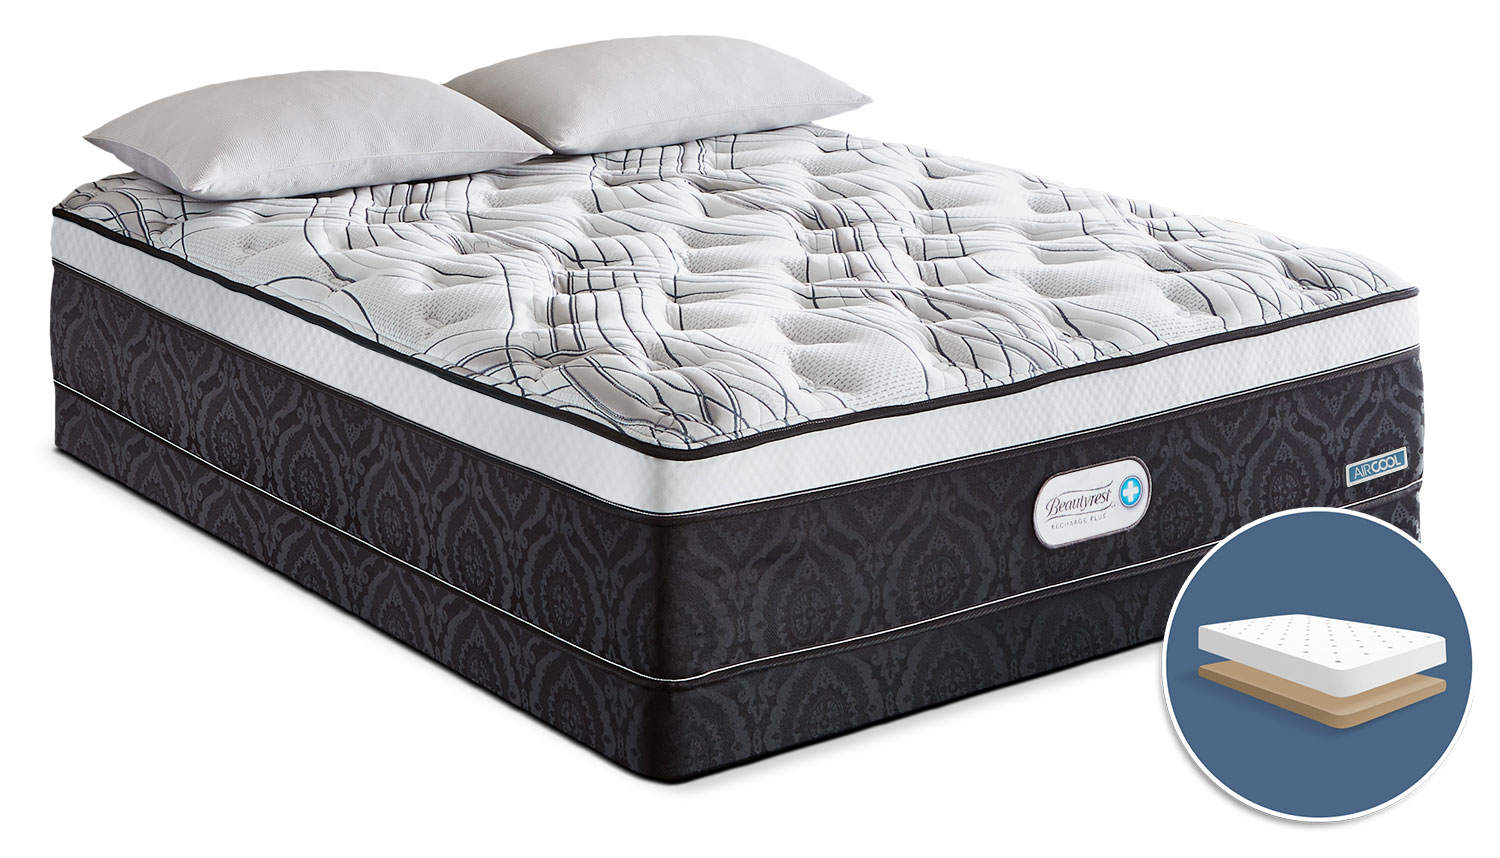 Beautyrest® Recharge Ambrose Euro-Top Luxury Firm Low-Profile King Mattress Set